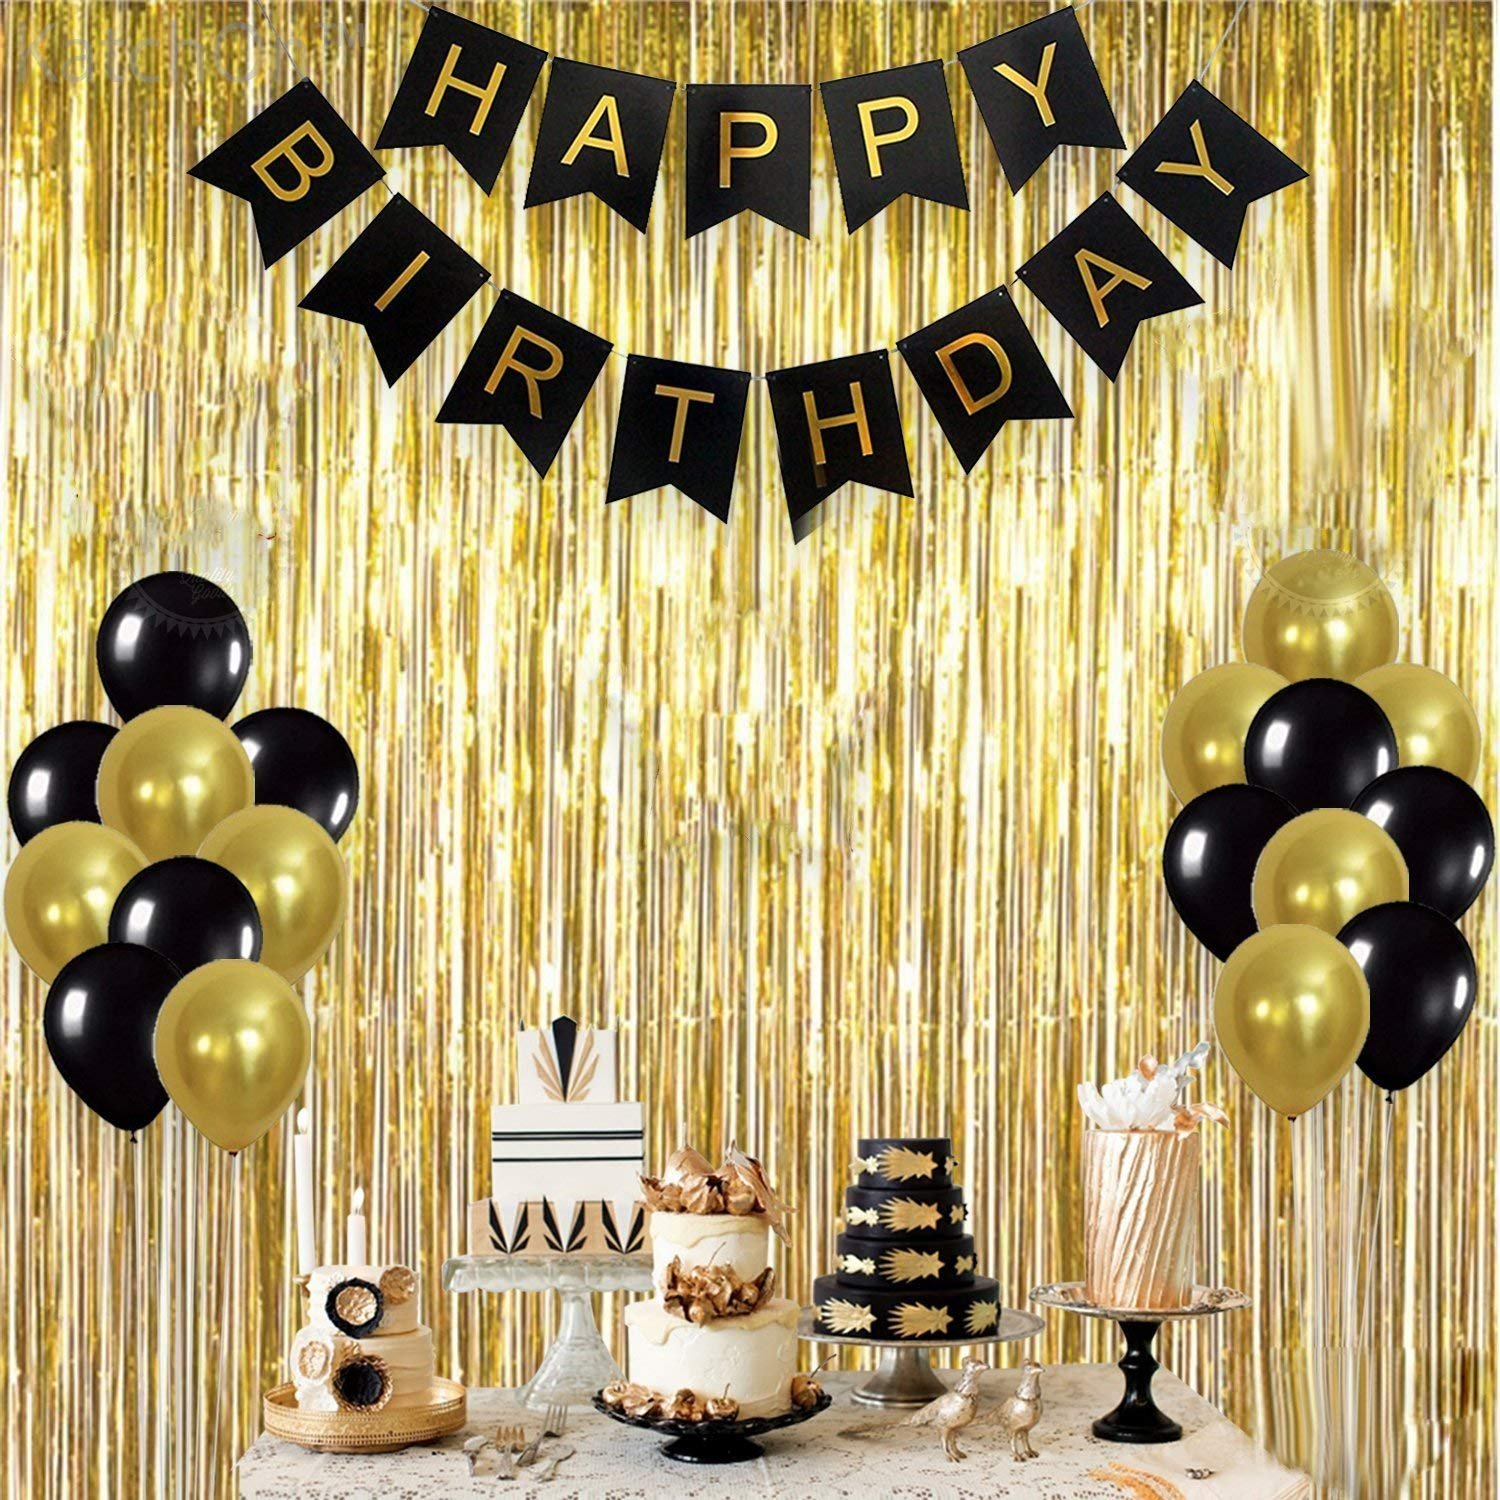 Oisee Birthday Party Decorations Set Black Gold Background Party Supplies Group Banner Honeycomb Paper Lantern Balloon Rain Curtain Tassel Paper Flower Ball